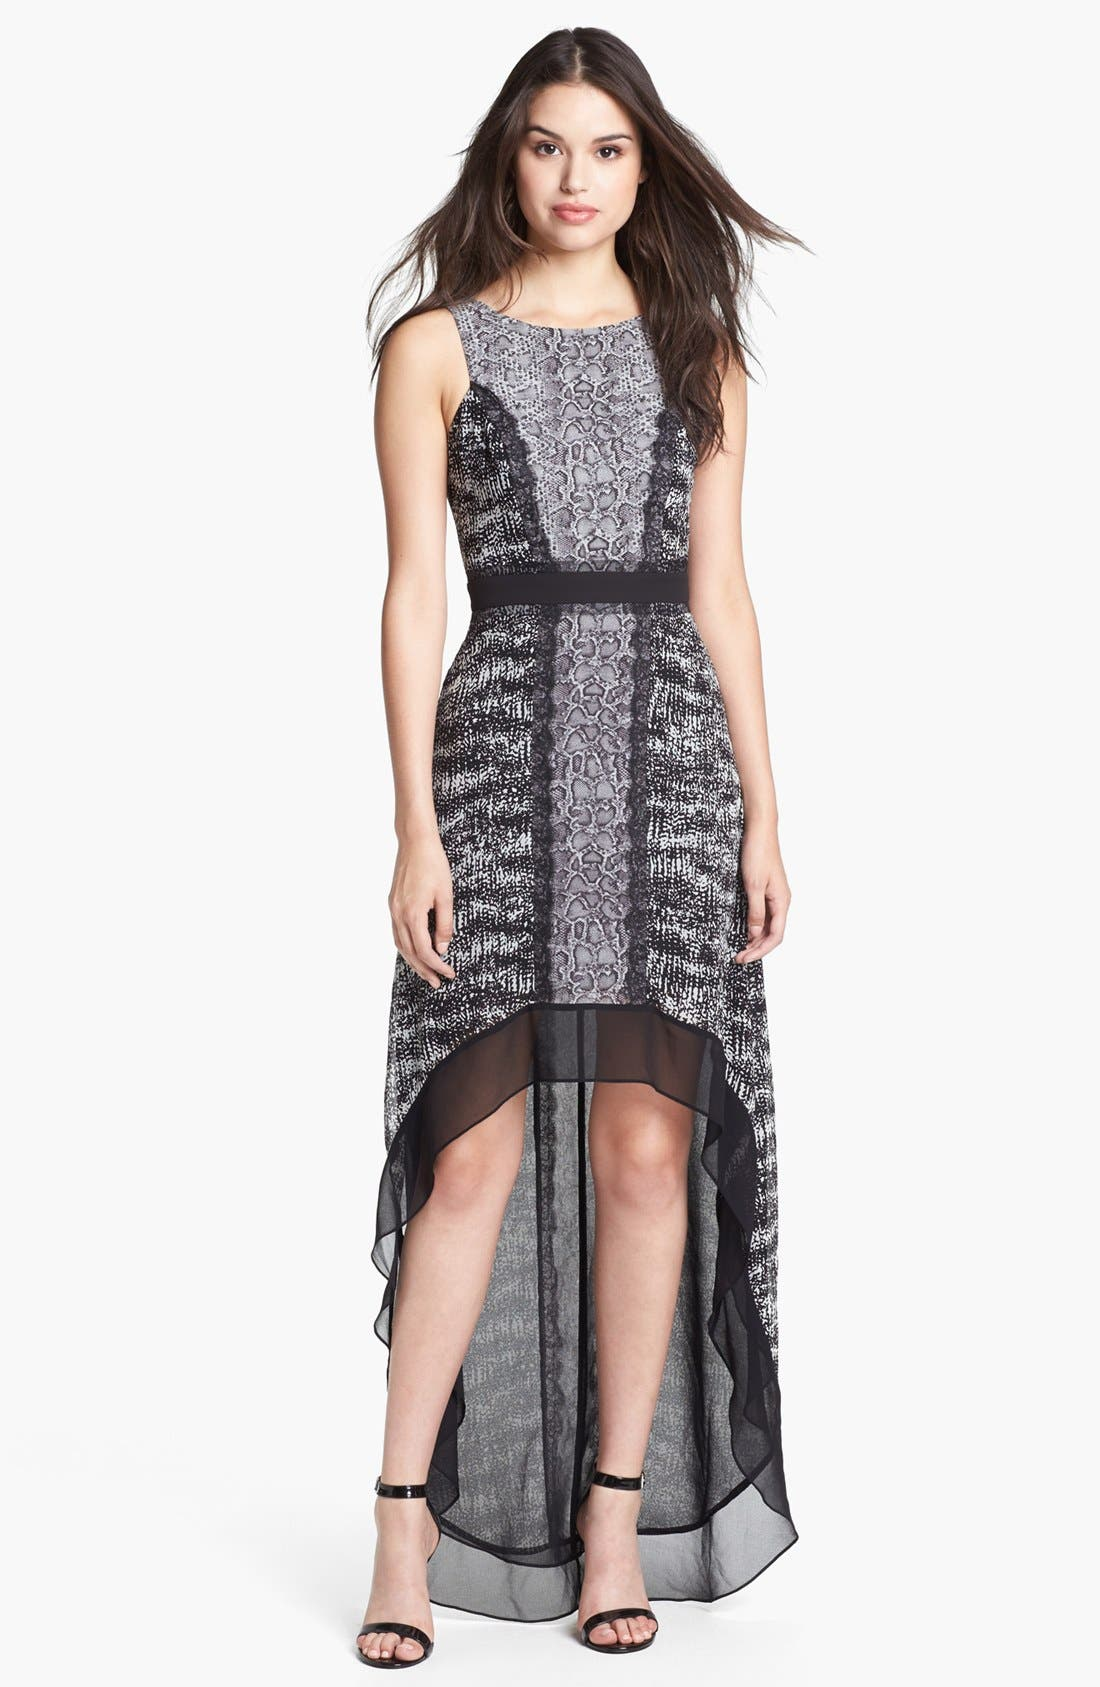 Alternate Image 1 Selected - BCBGMAXAZRIA Mixed Print High/Low Chiffon Dress